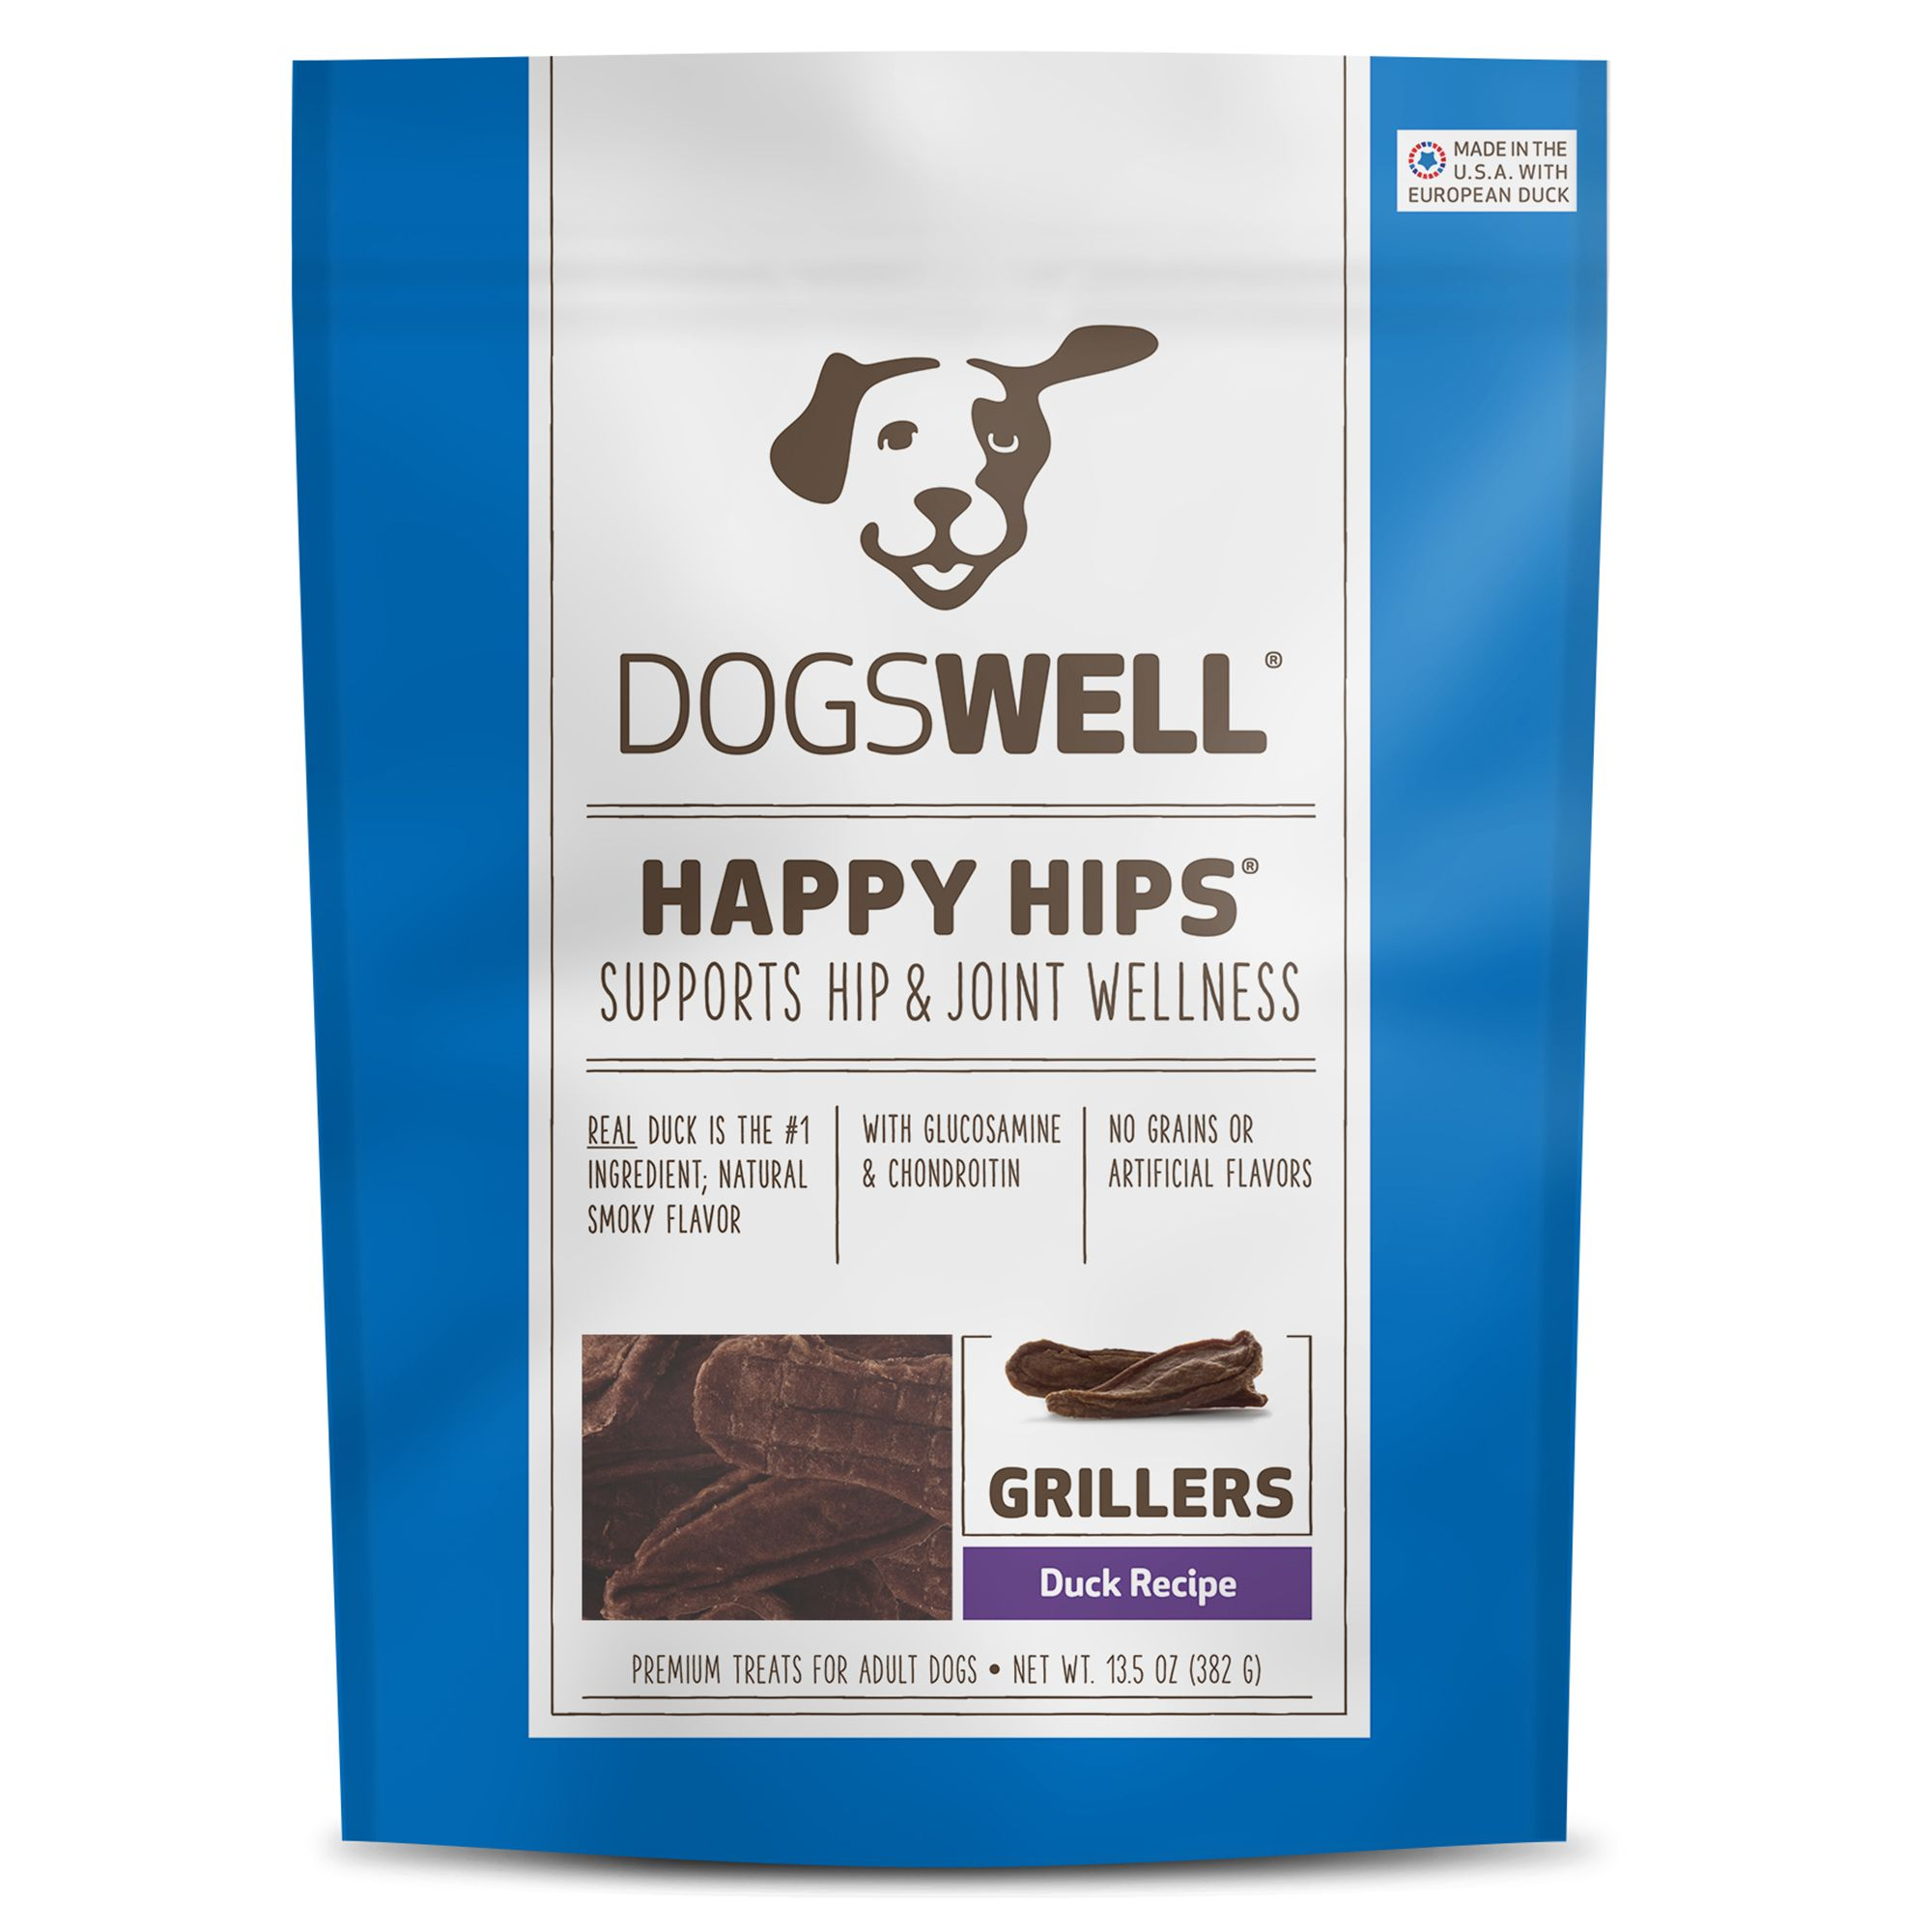 Dogswell Happy Hips Grillers Dog Treat Grain Free Duck Size 13.5 Oz